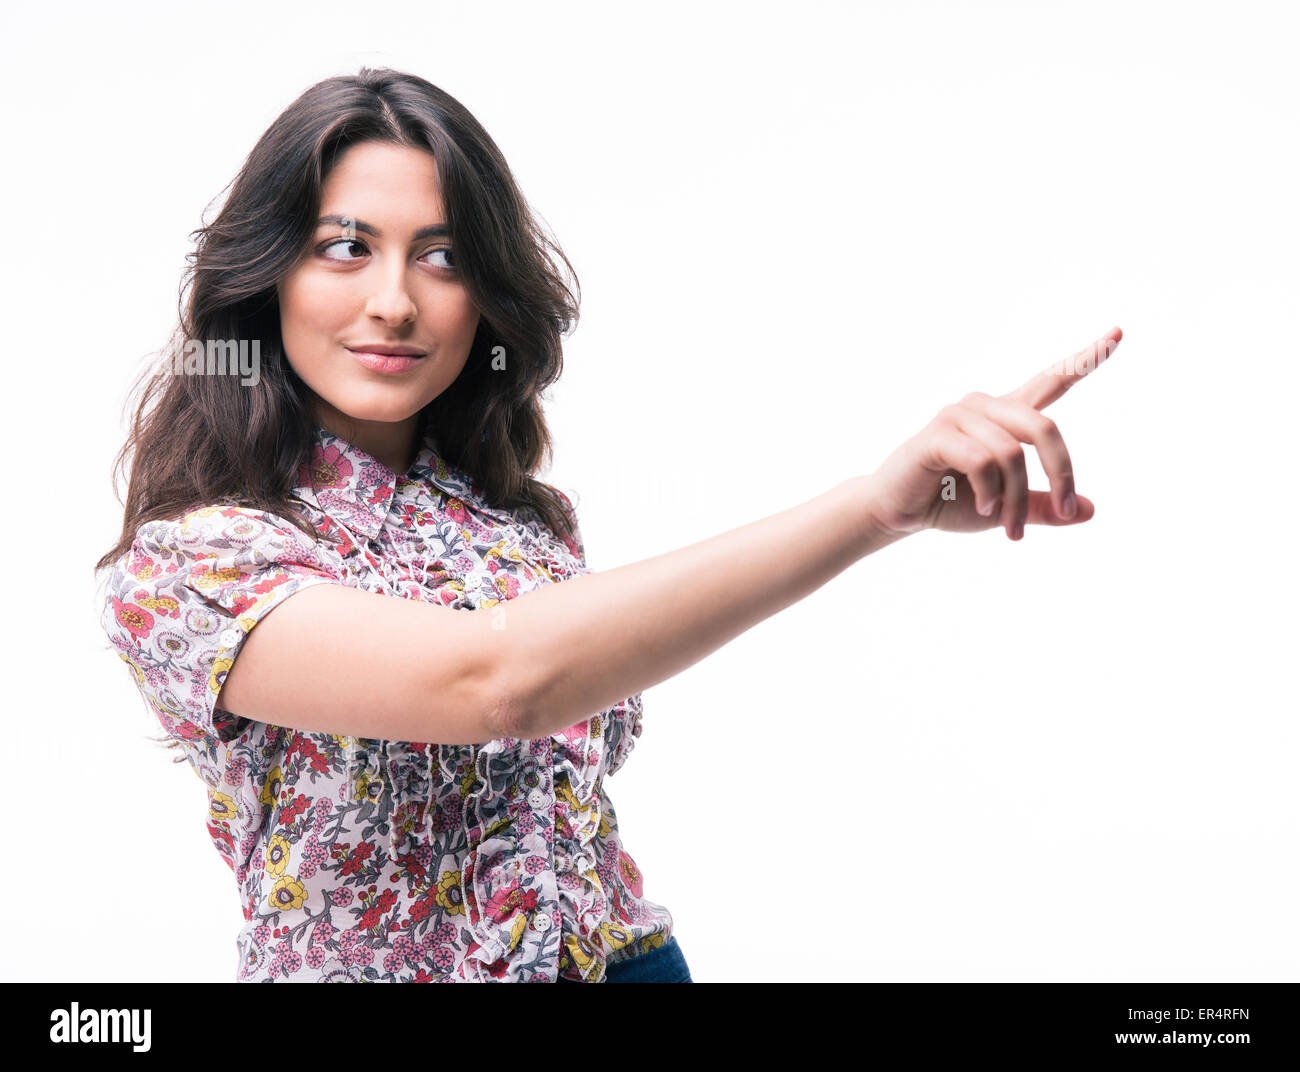 Cute woman pointing finger away isolated on a white background - Stock Image